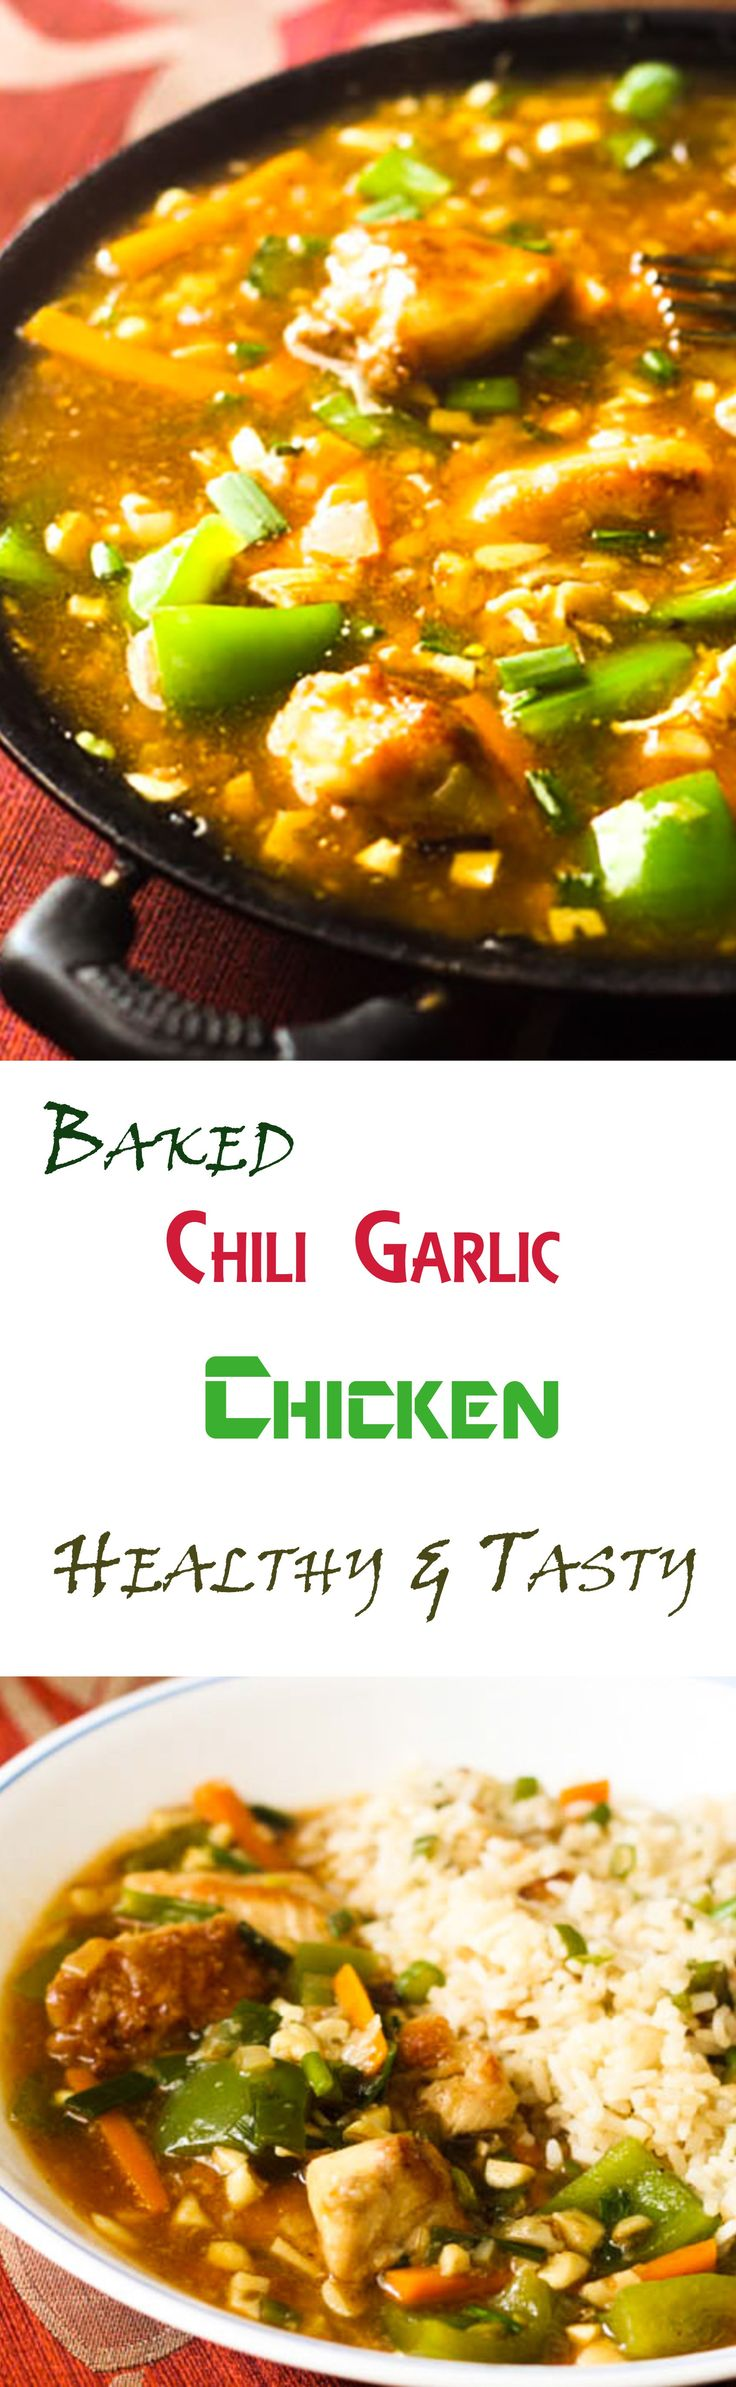 The chili garlic chicken recipe is not fried like the typical style. I have baked the chicken pieces before adding them to the gravy. Yes!!! All the calories that come with the frying have just vanished. Isn't this just so amazing. Being able to have eat healthy and eat tasty.